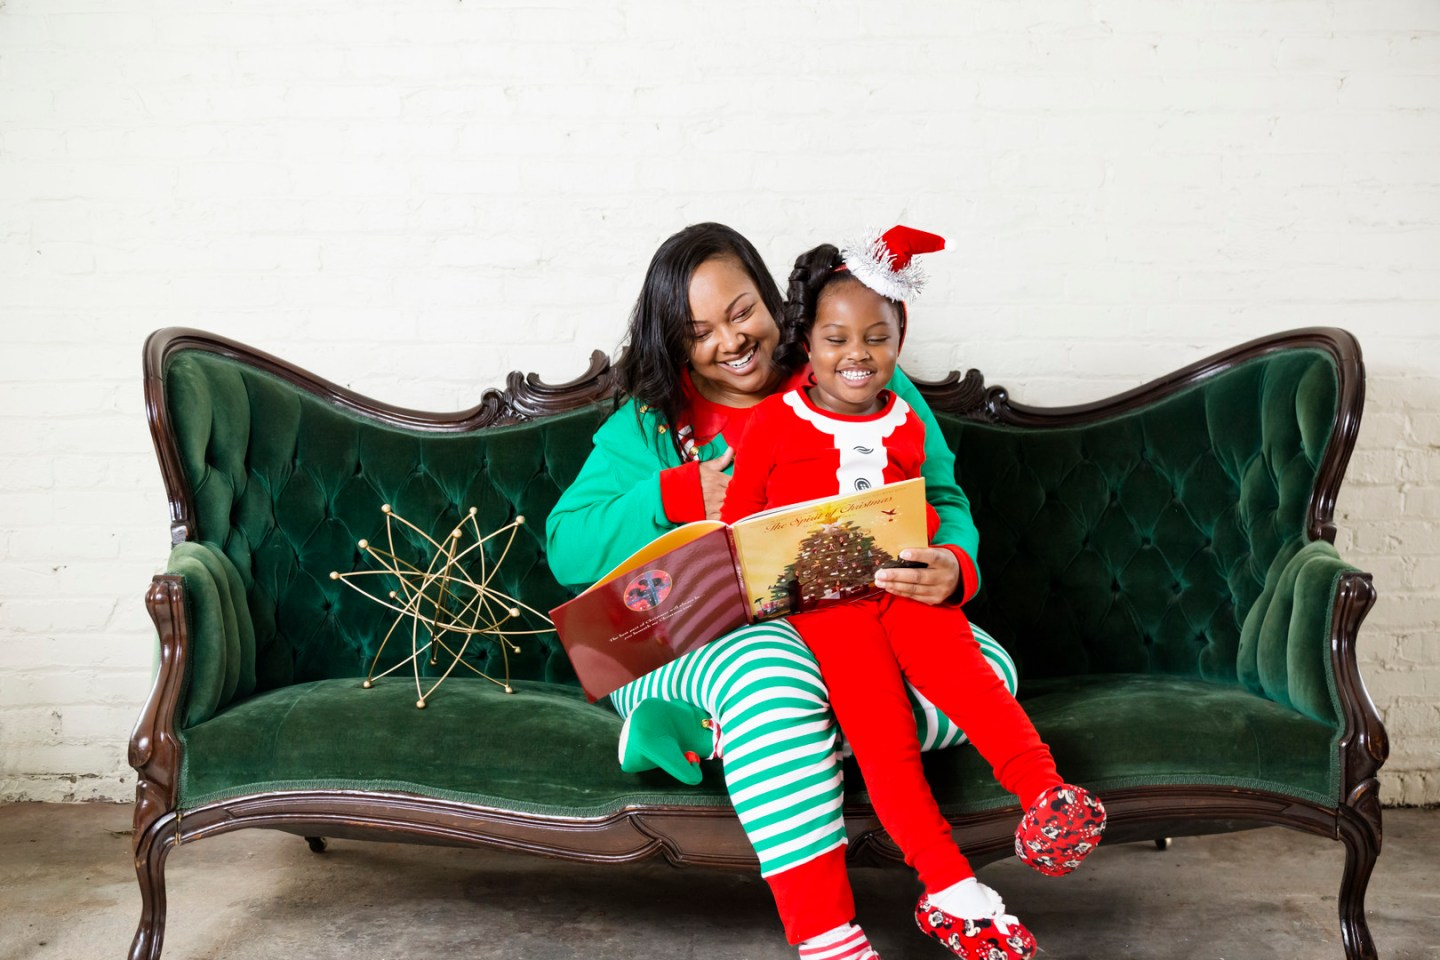 0tcknp5t6uej1vntve54_big Mommy & Me Christmas PJ Session in Greensboro, NC